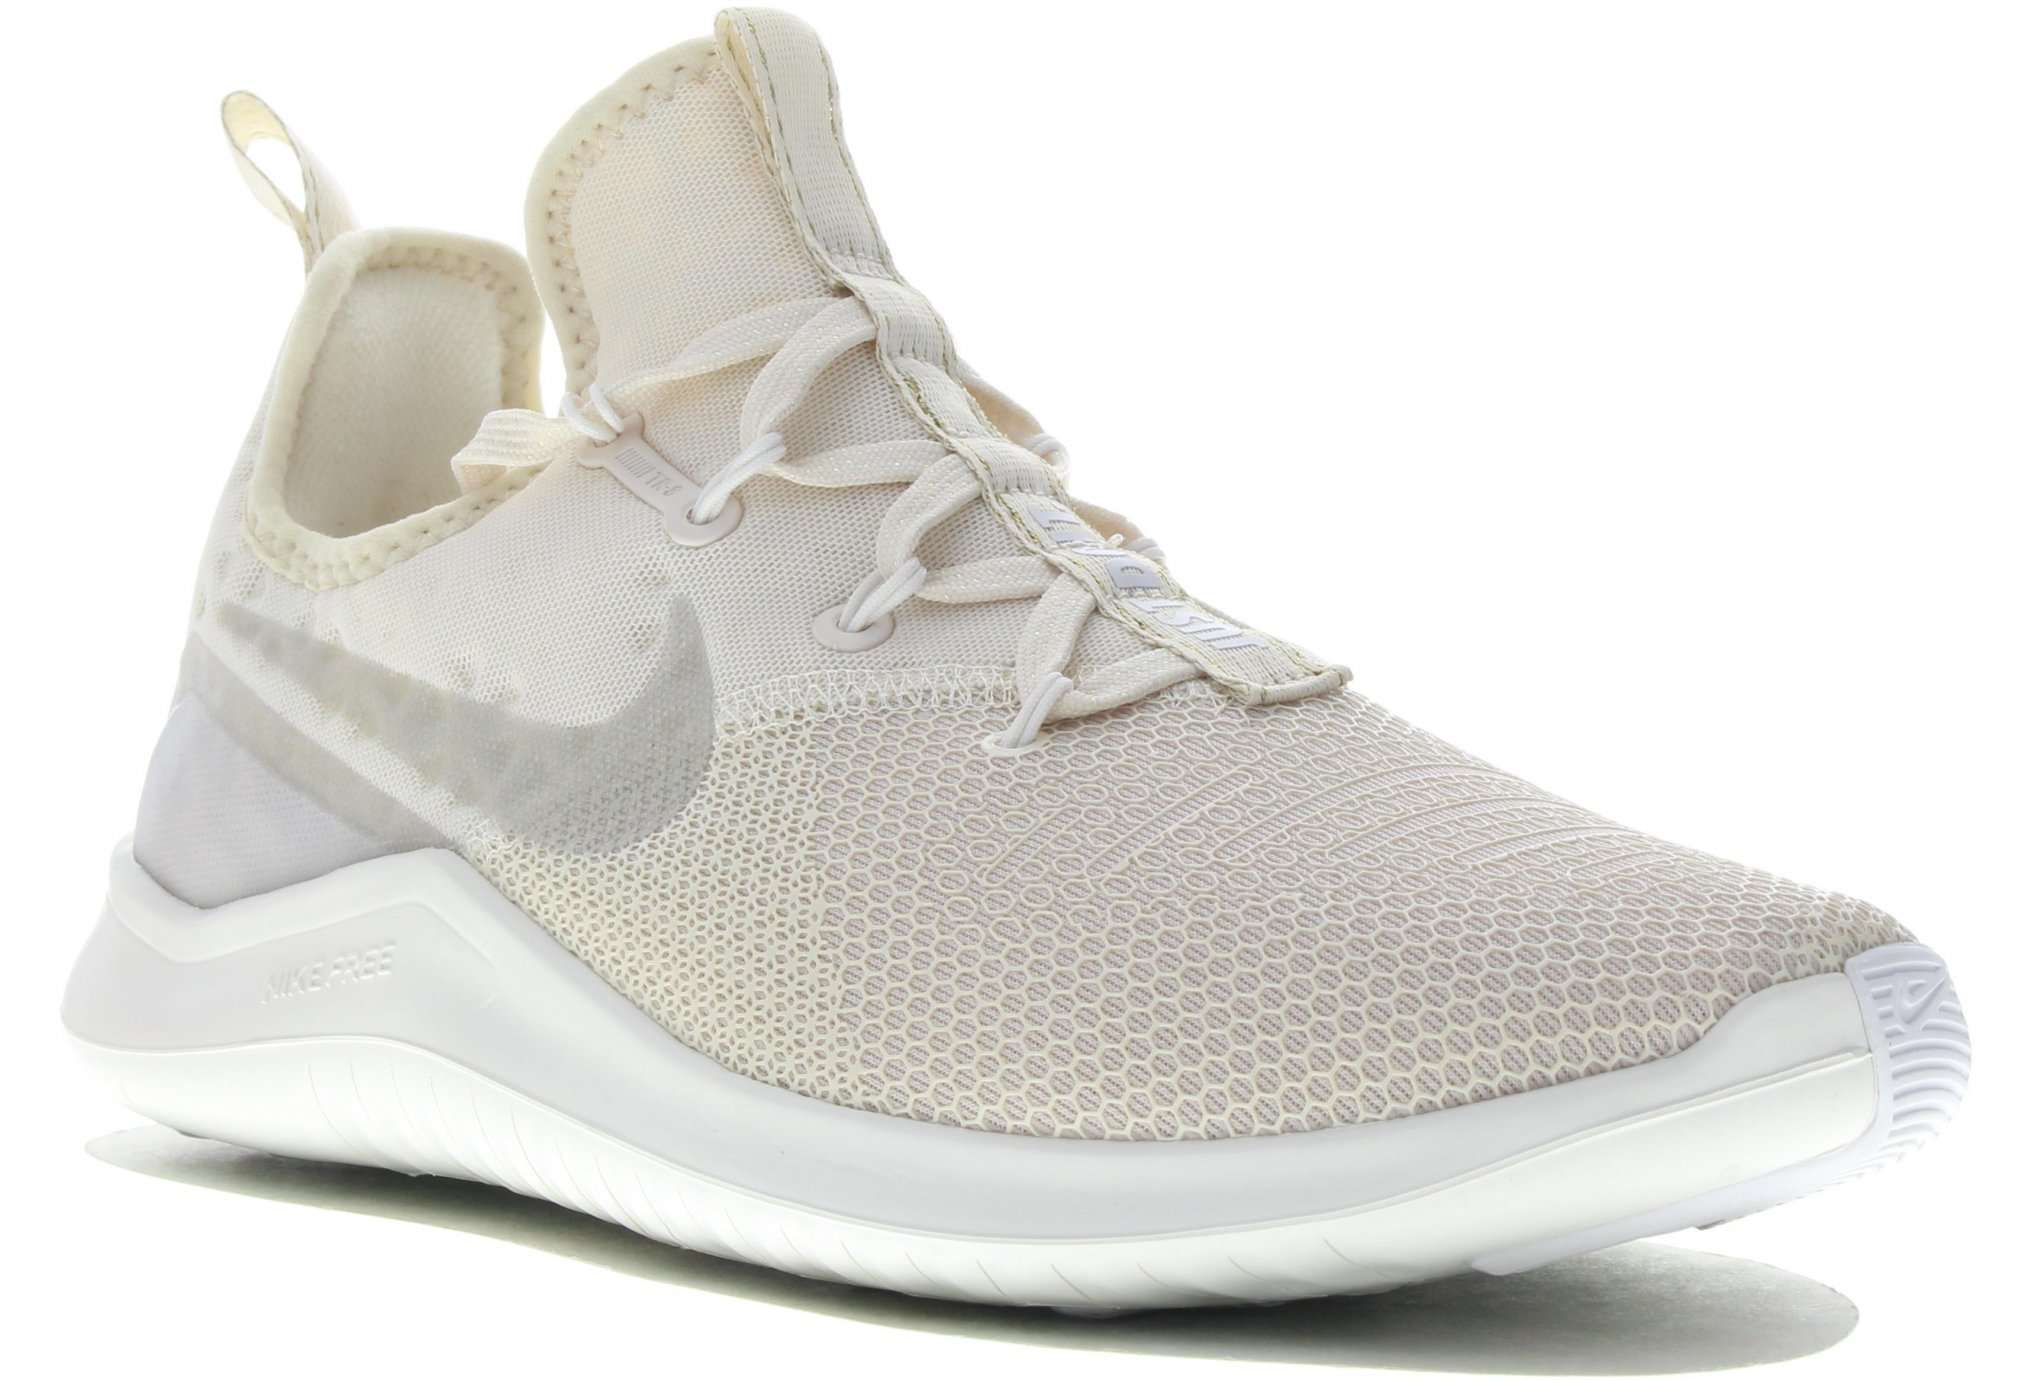 Nike Free TR 8 Champagne W Chaussures running femme